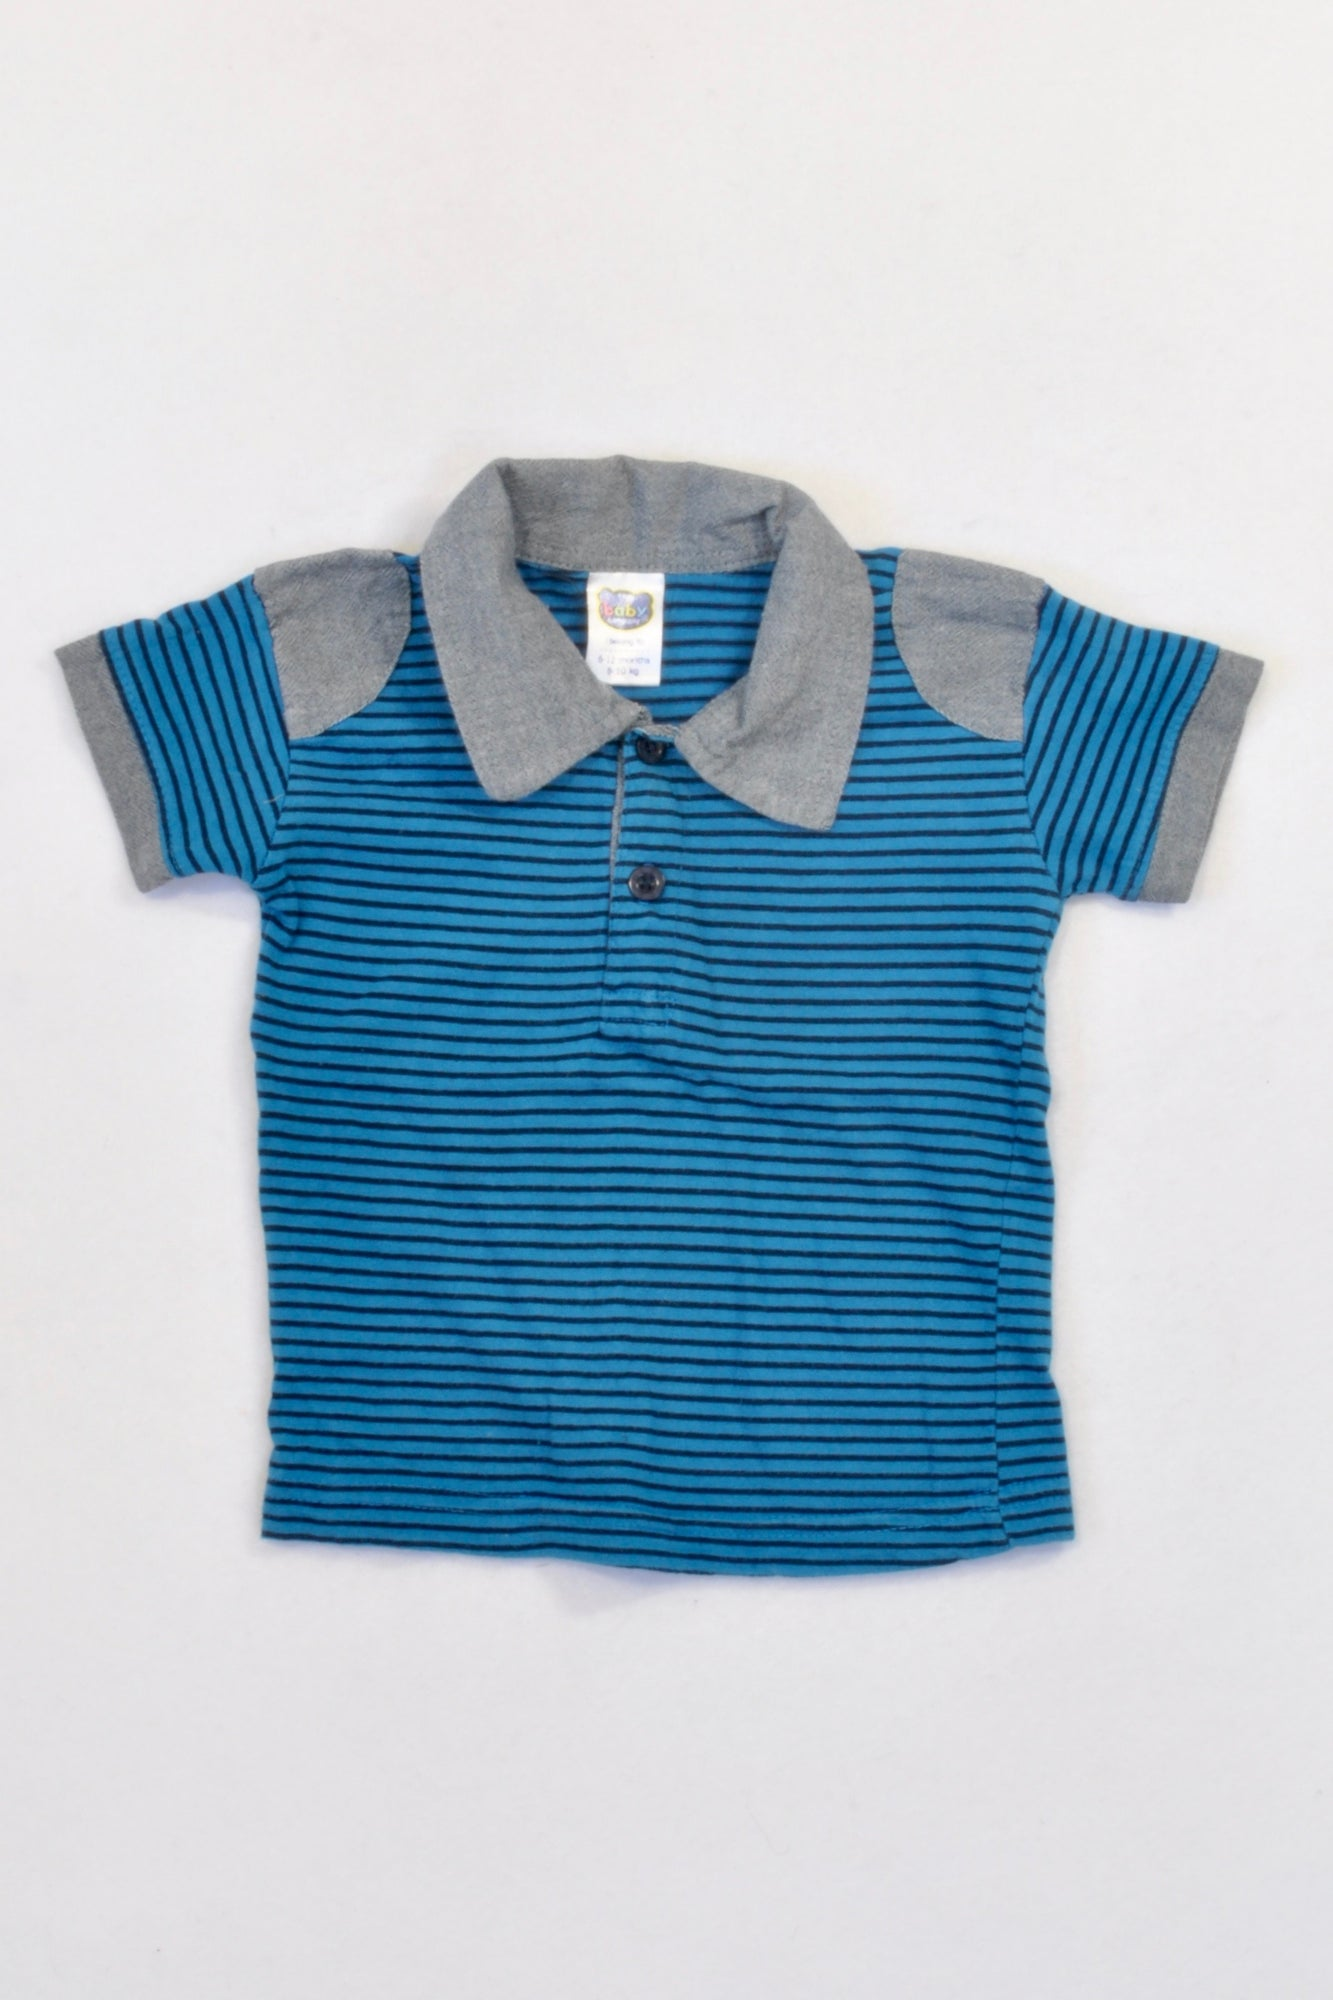 Ackermans Blue Stripe Grey Trim Golf T-shirt Boys 6-12 months